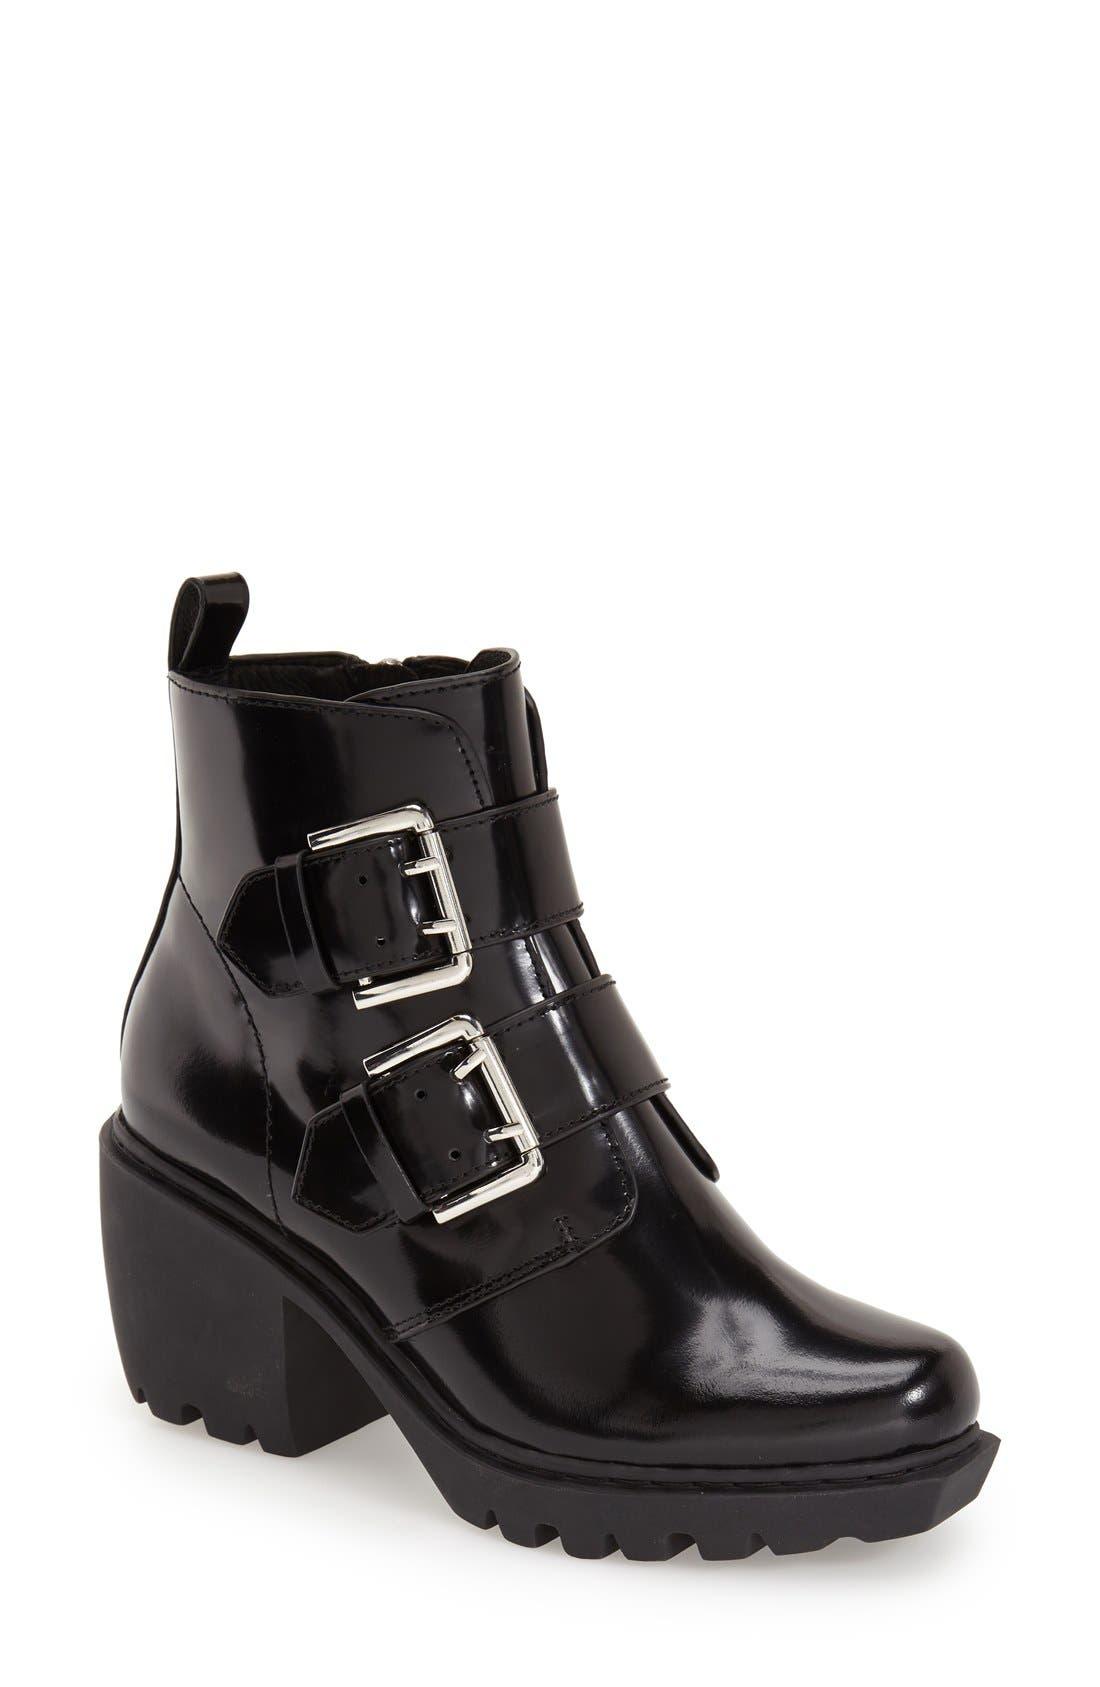 Main Image - Opening Ceremony 'Grunge' Double Buckle Bootie